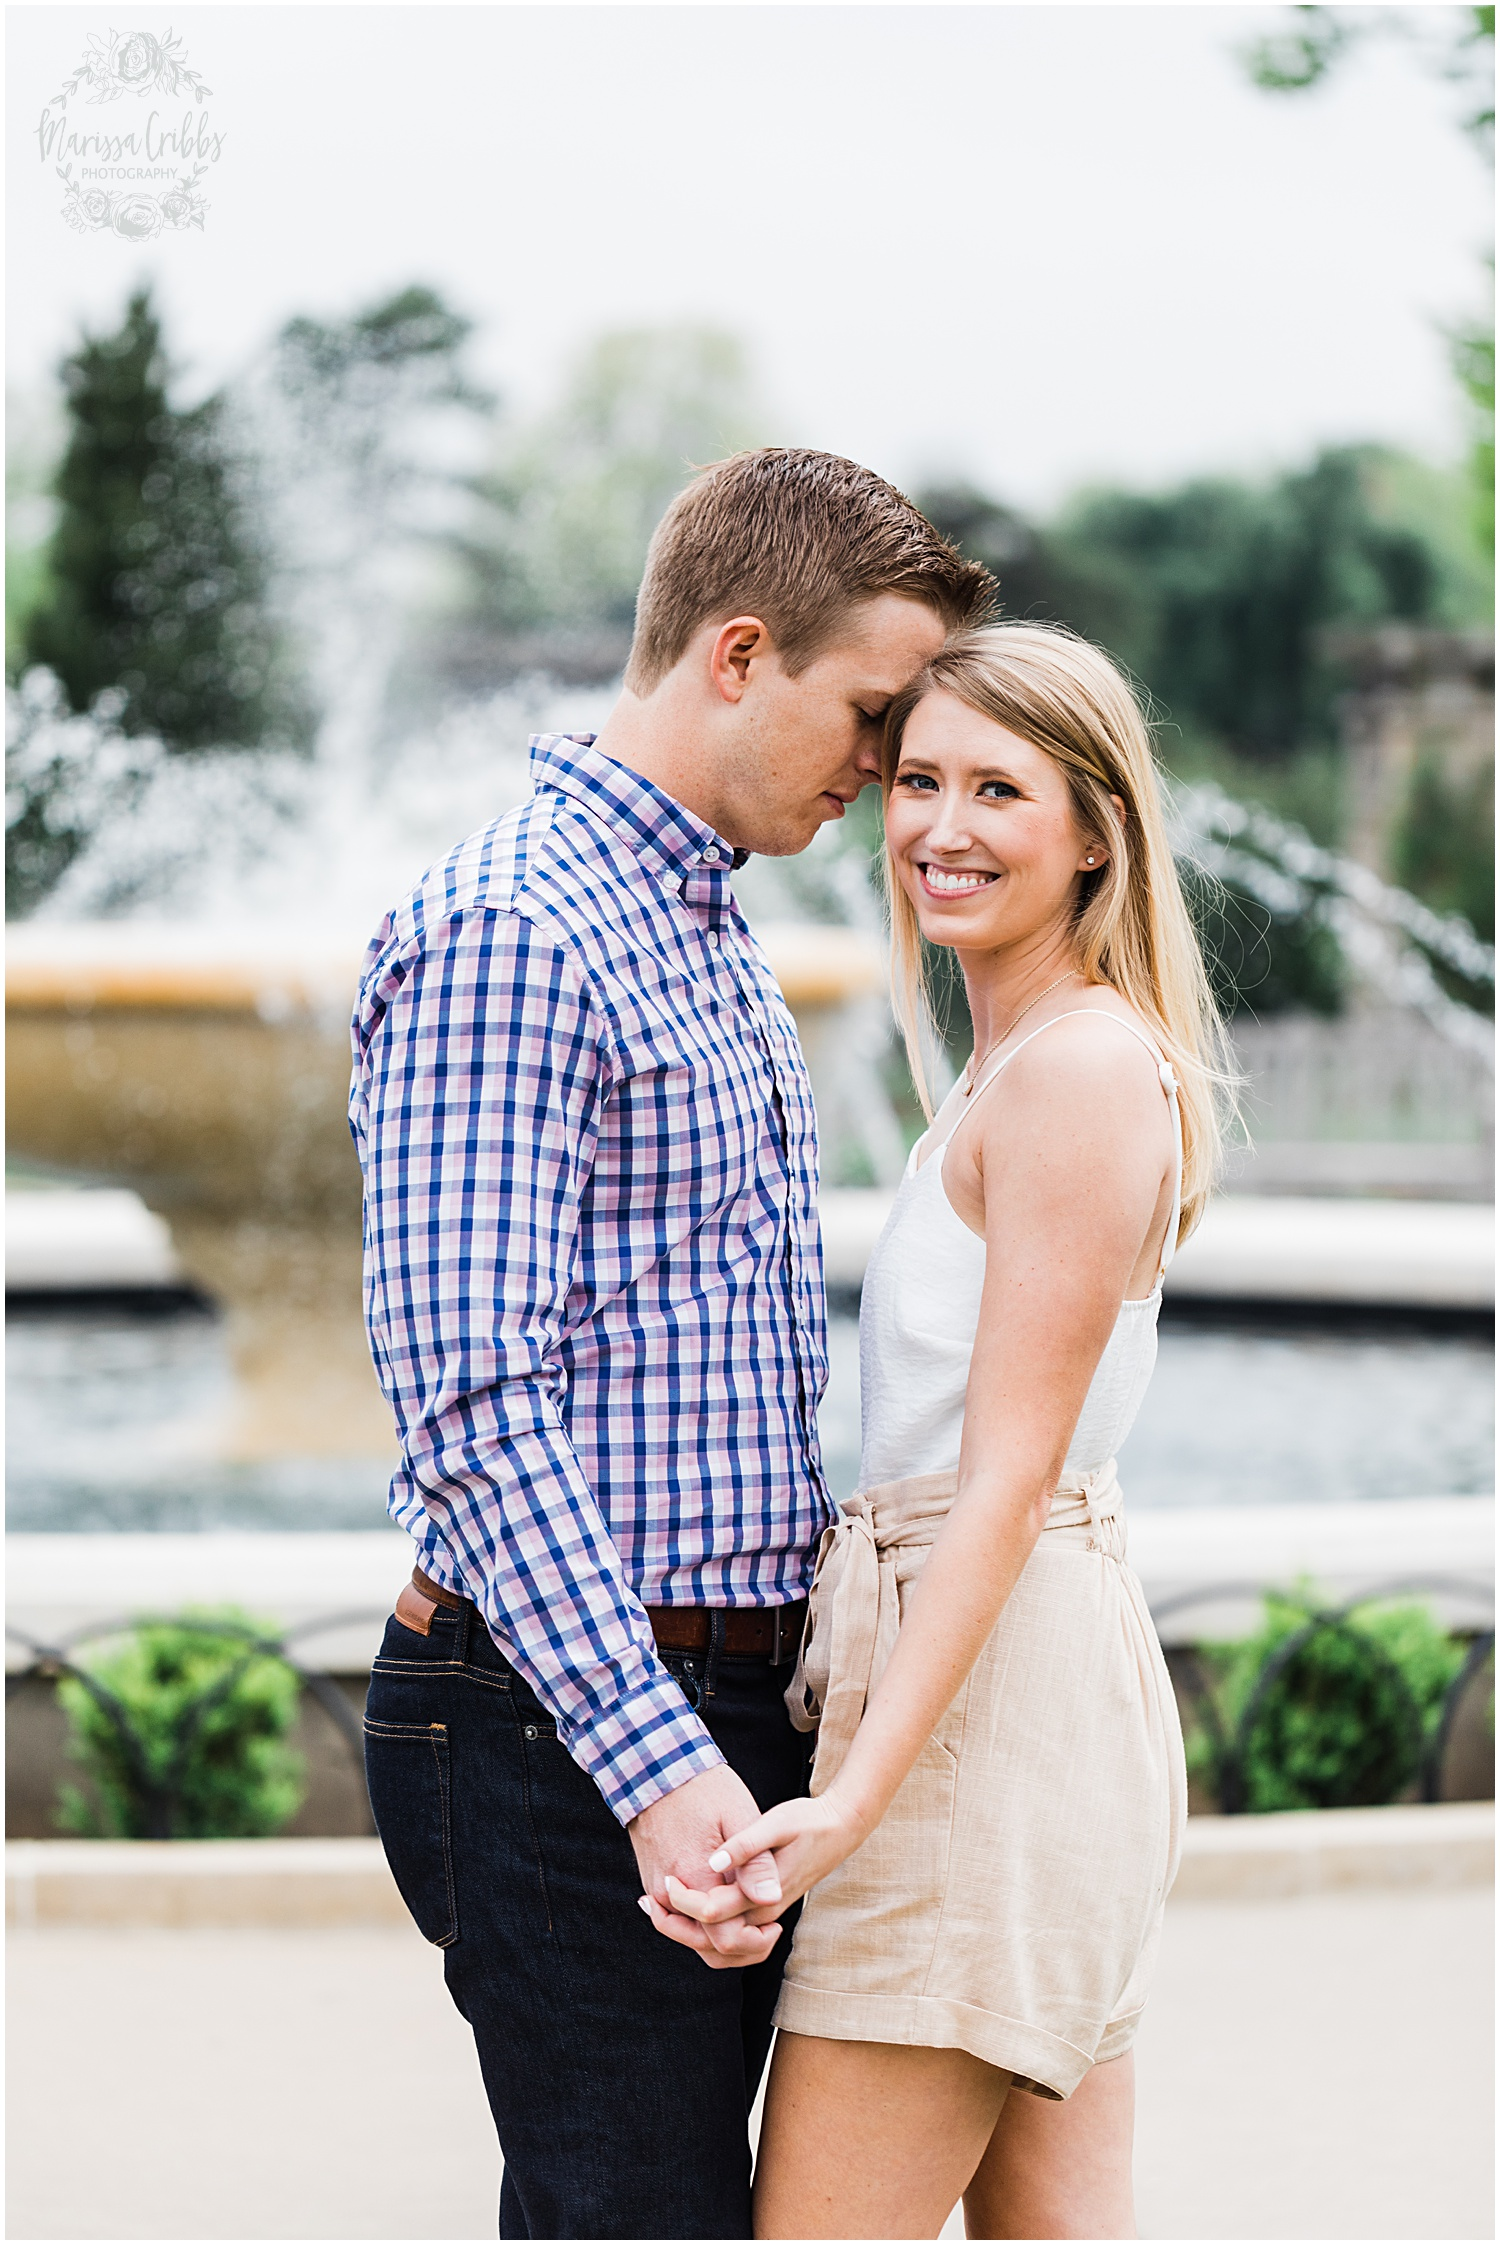 MADDY & KYLE ENGAGEMENT | MARISSA CRIBBS PHOTOGRAPHY_7615.jpg